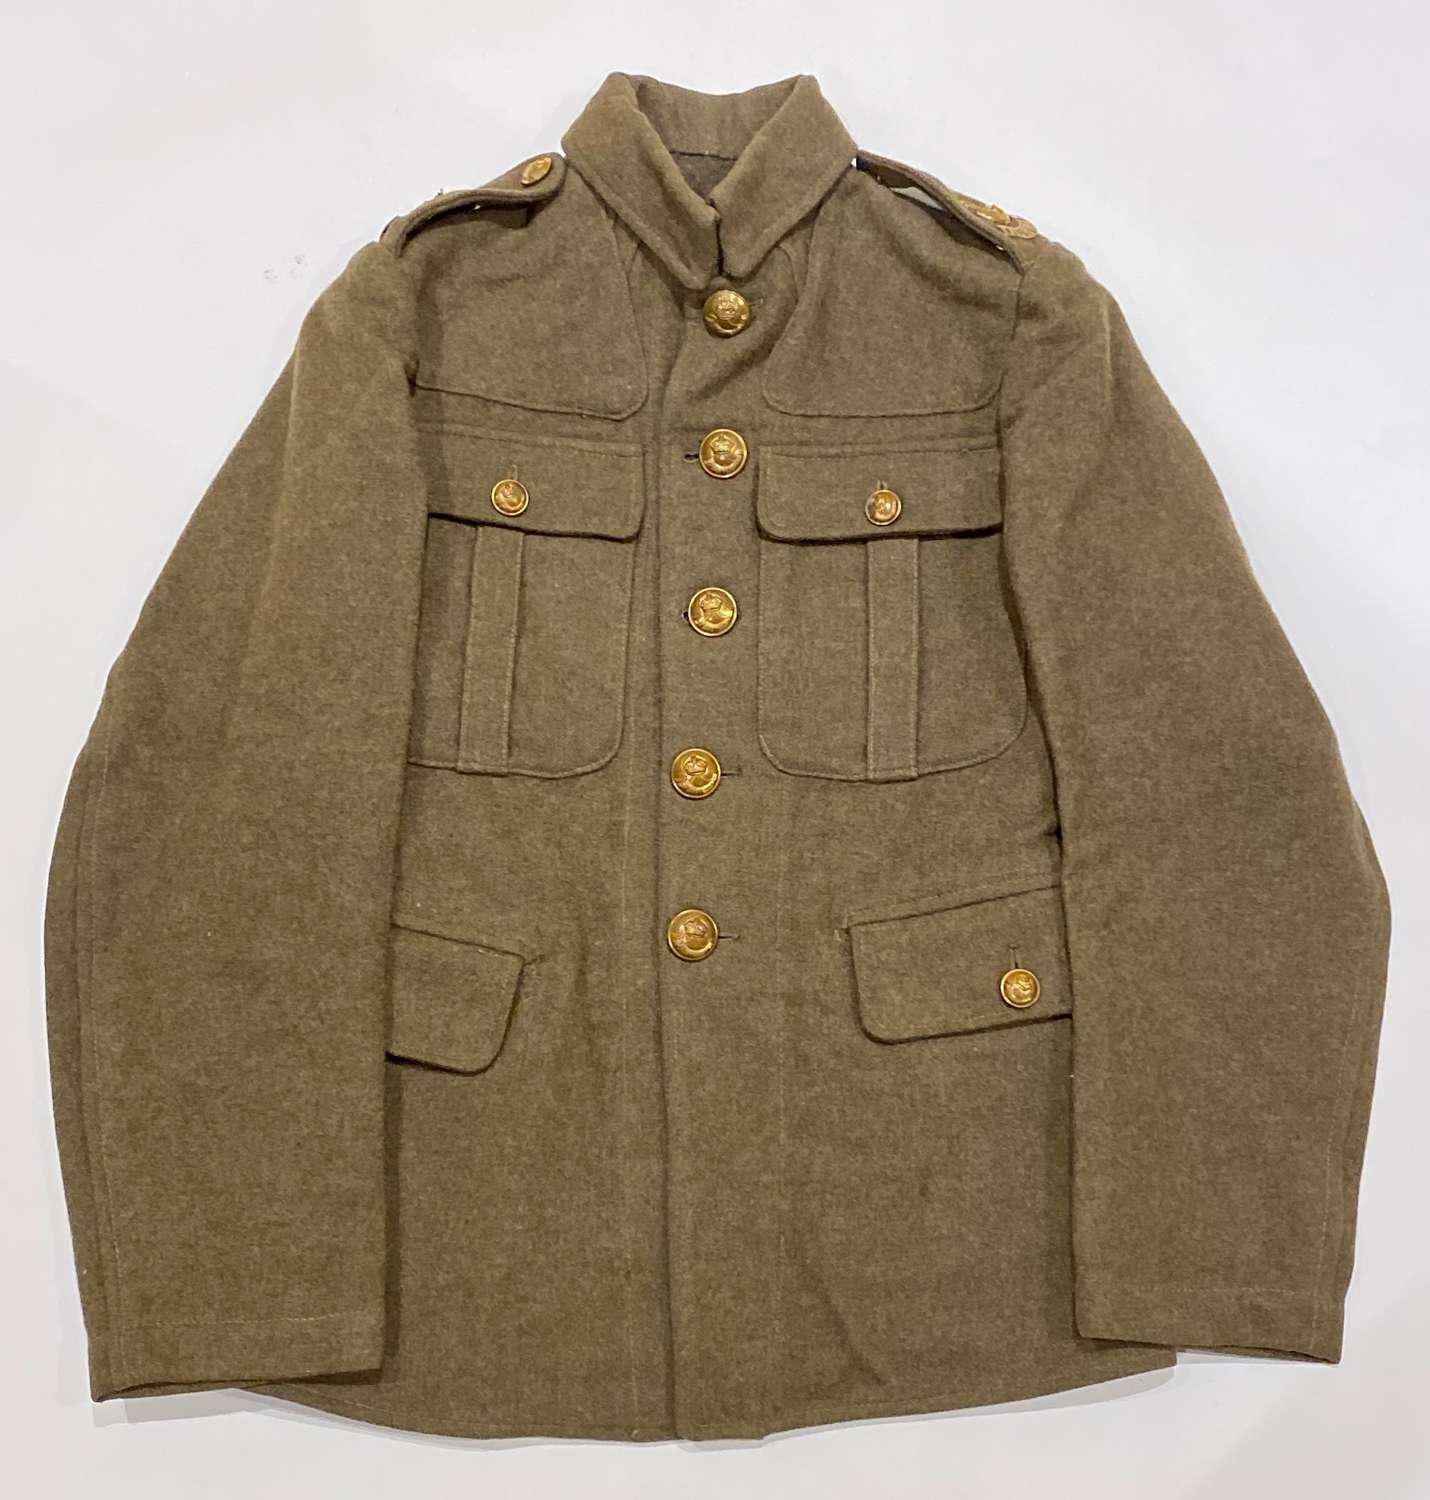 WW1 1902 Durham Light Infantry Other Rank's Tunic.